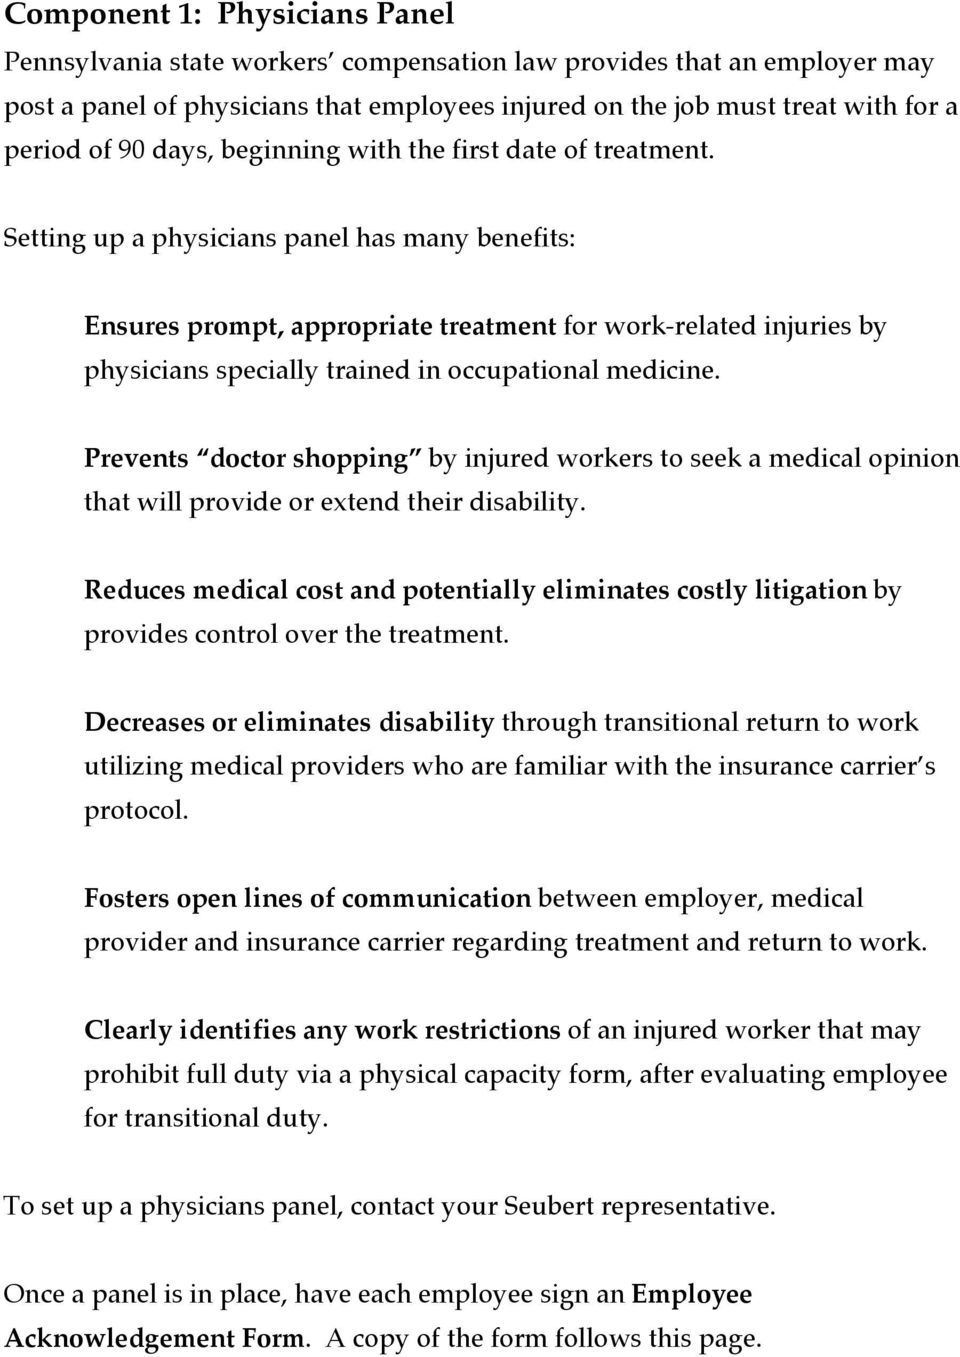 Setting up a physicians panel has many benefits: Ensures prompt, appropriate treatment for work-related injuries by physicians specially trained in occupational medicine.